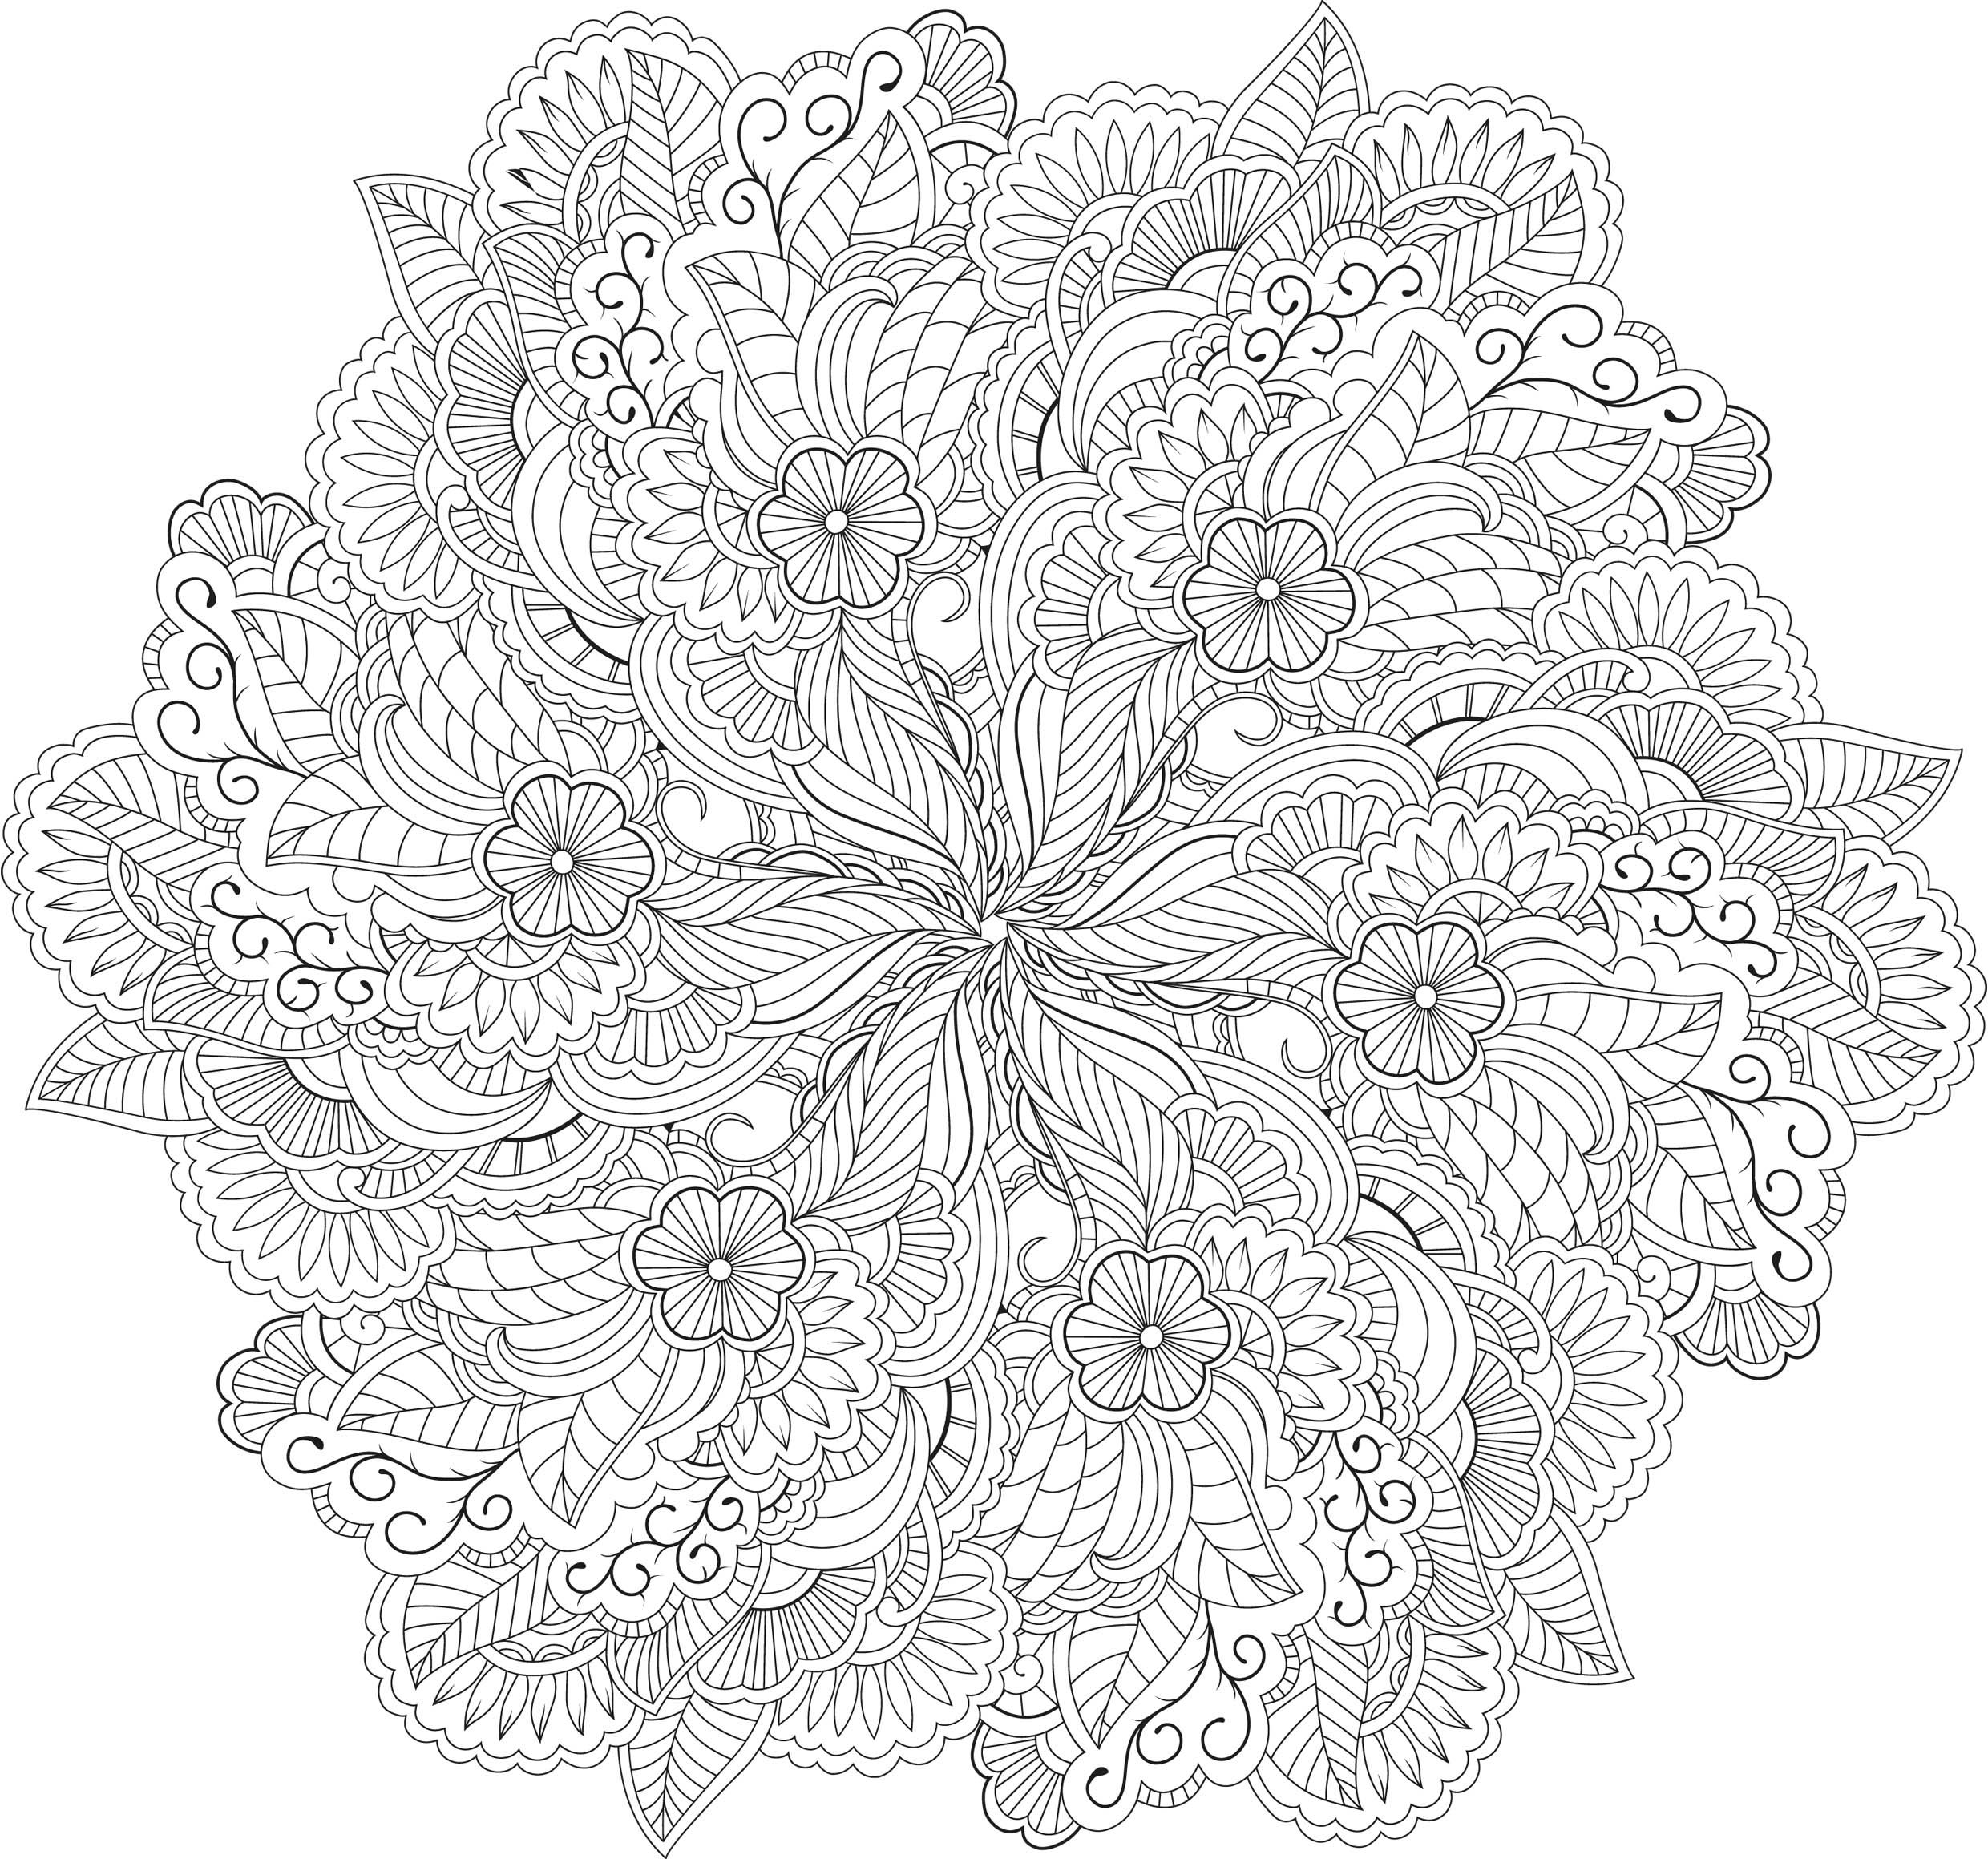 17 best images about coloriage adulte on pinterest coloring coloring books and mandalas